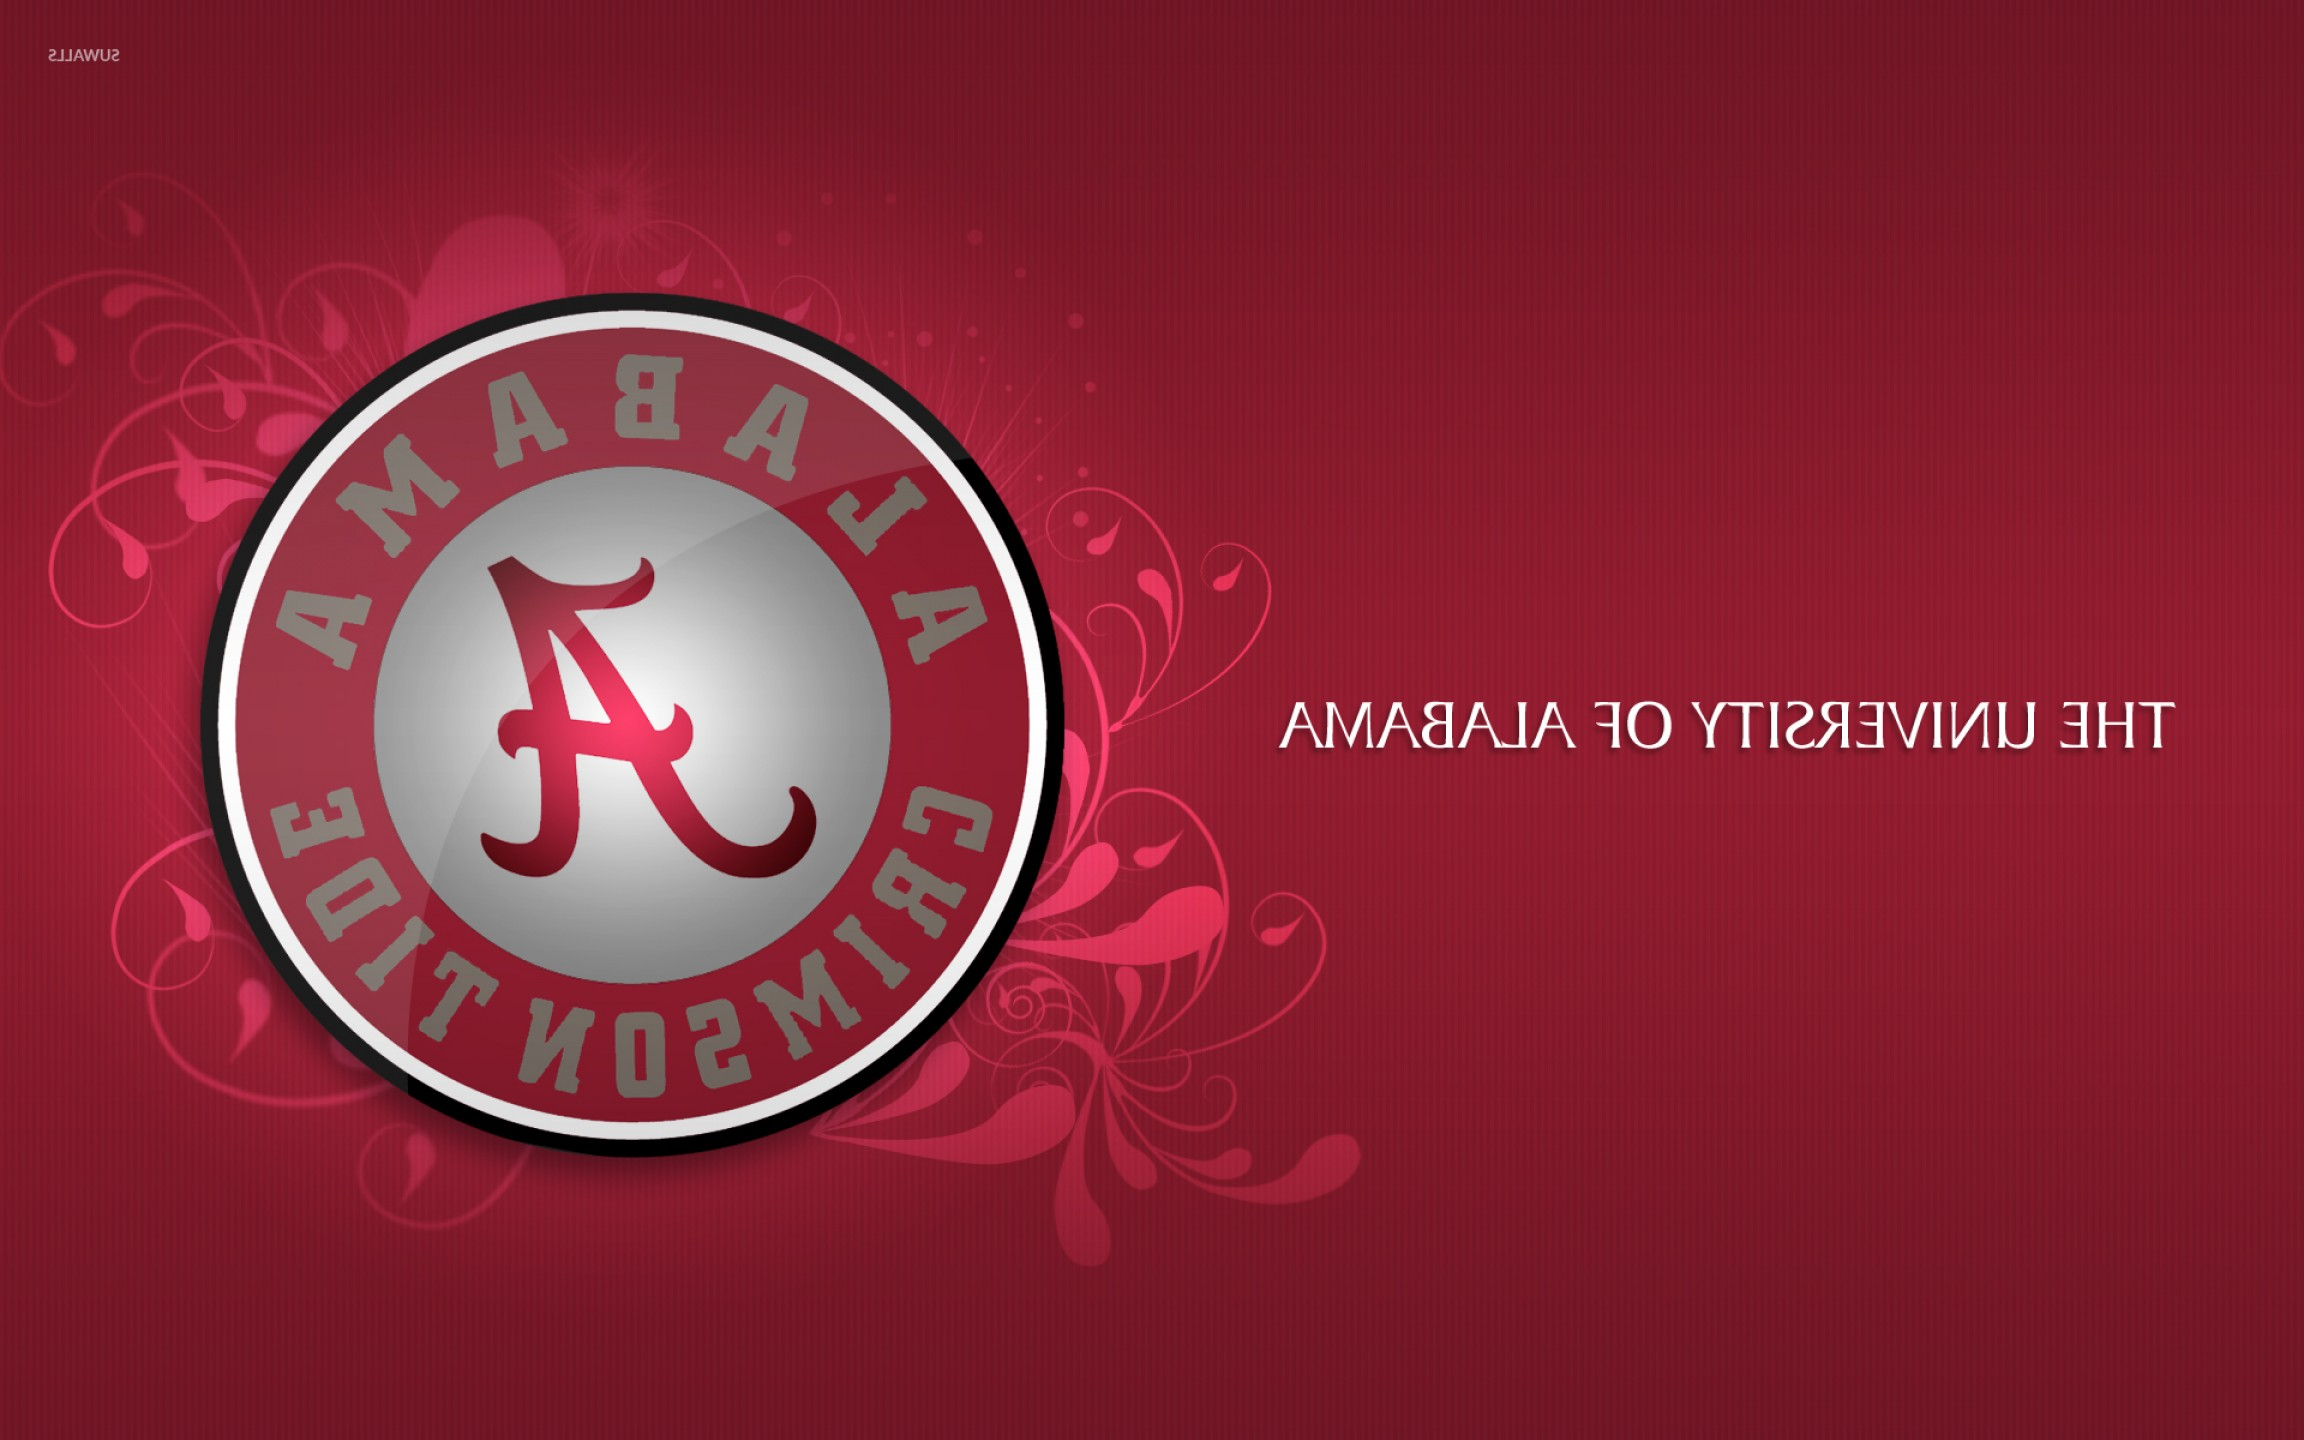 Crimson Tide Vector Art: Alabama Crimson Tide Football Logo